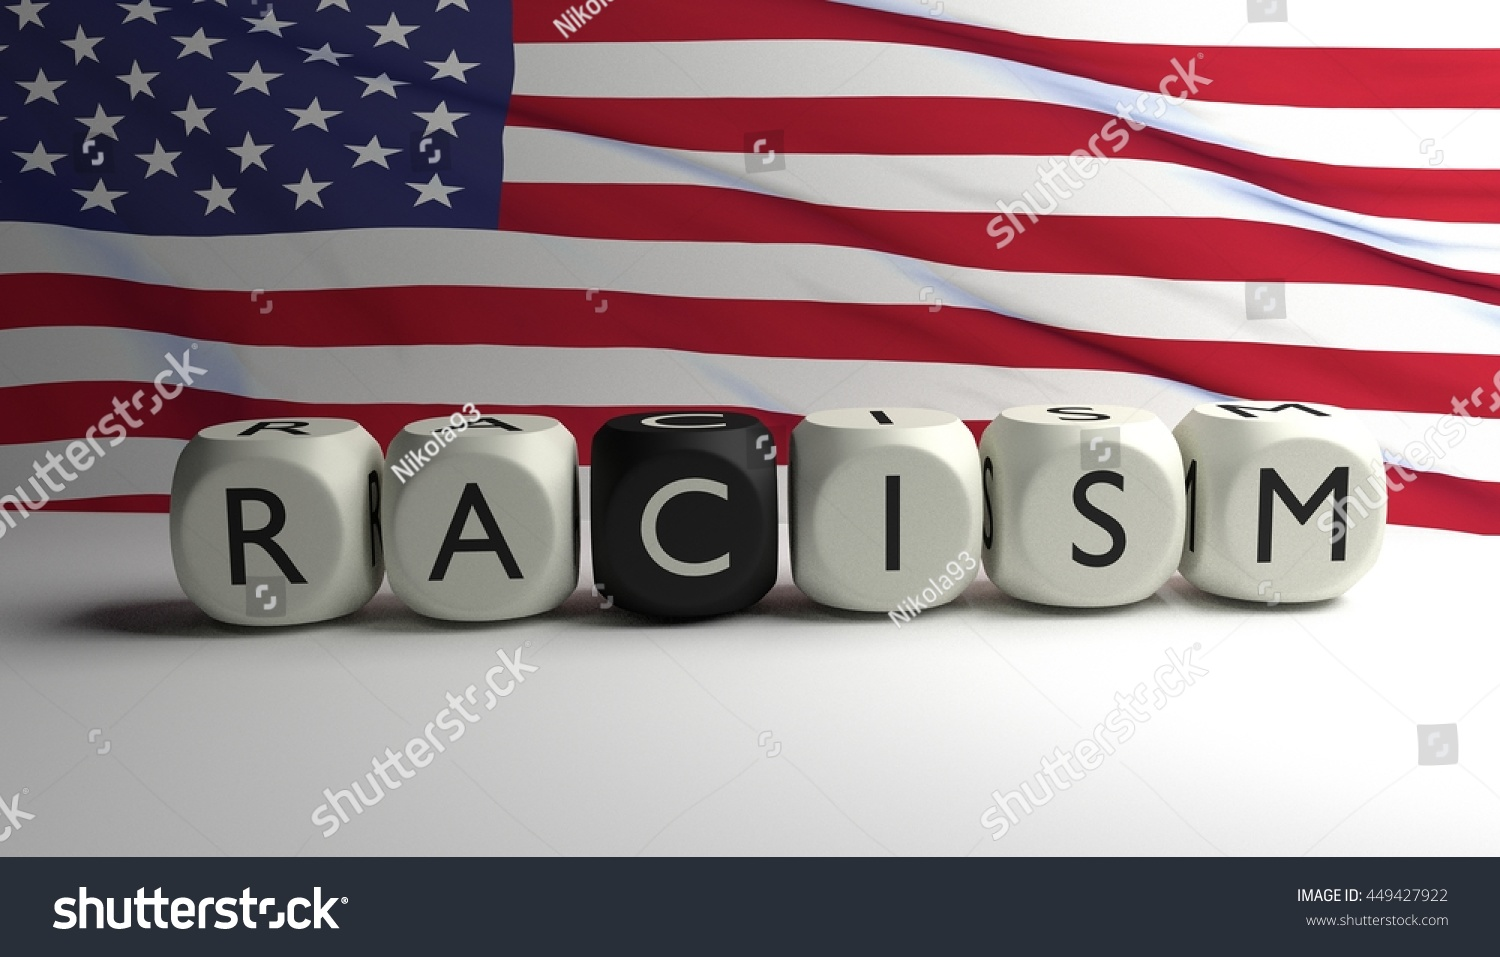 word racism 1213 quotes have been tagged as racism: harper lee: 'as you grow older, you'll see white men cheat black men every day of your life, but let me tell you.